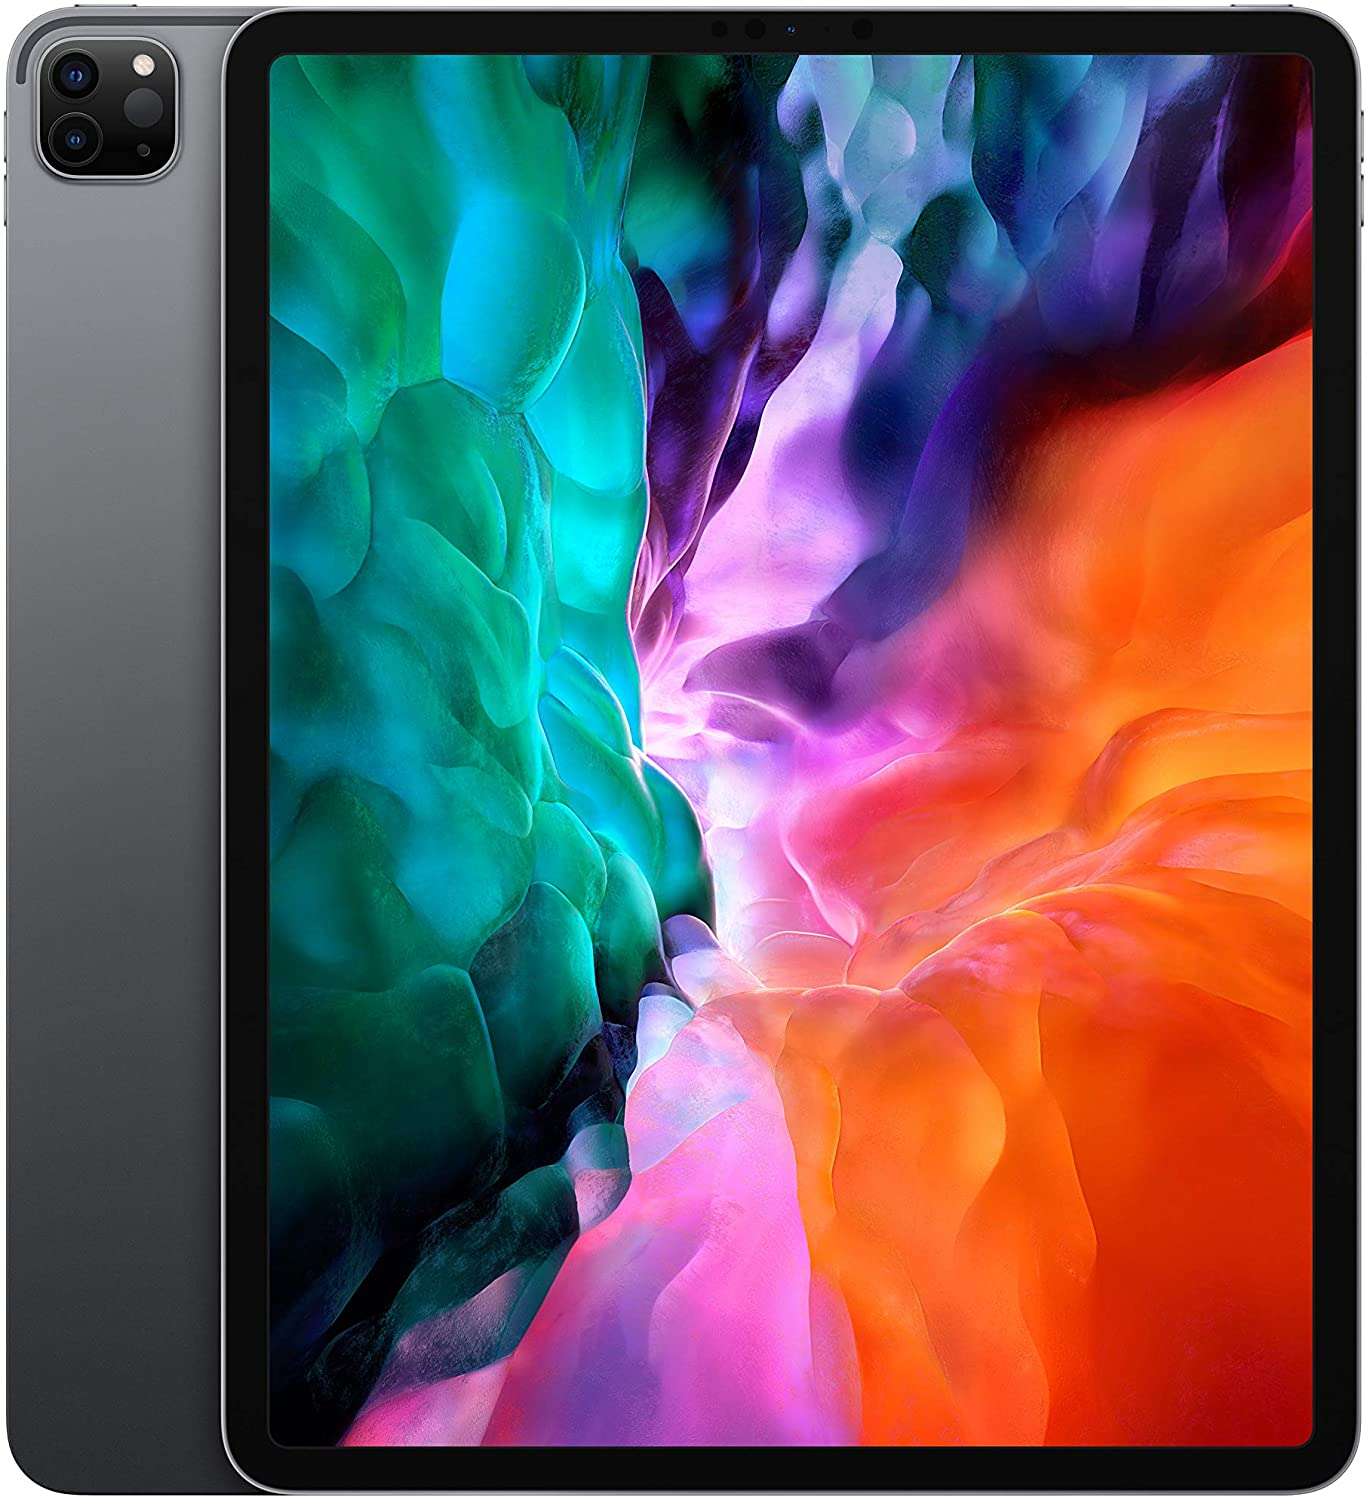 """Apple iPad Pro 12.9"""" (2020 – 4th Gen), Wi-Fi, 256GB, Space Gray [With Facetime]"""